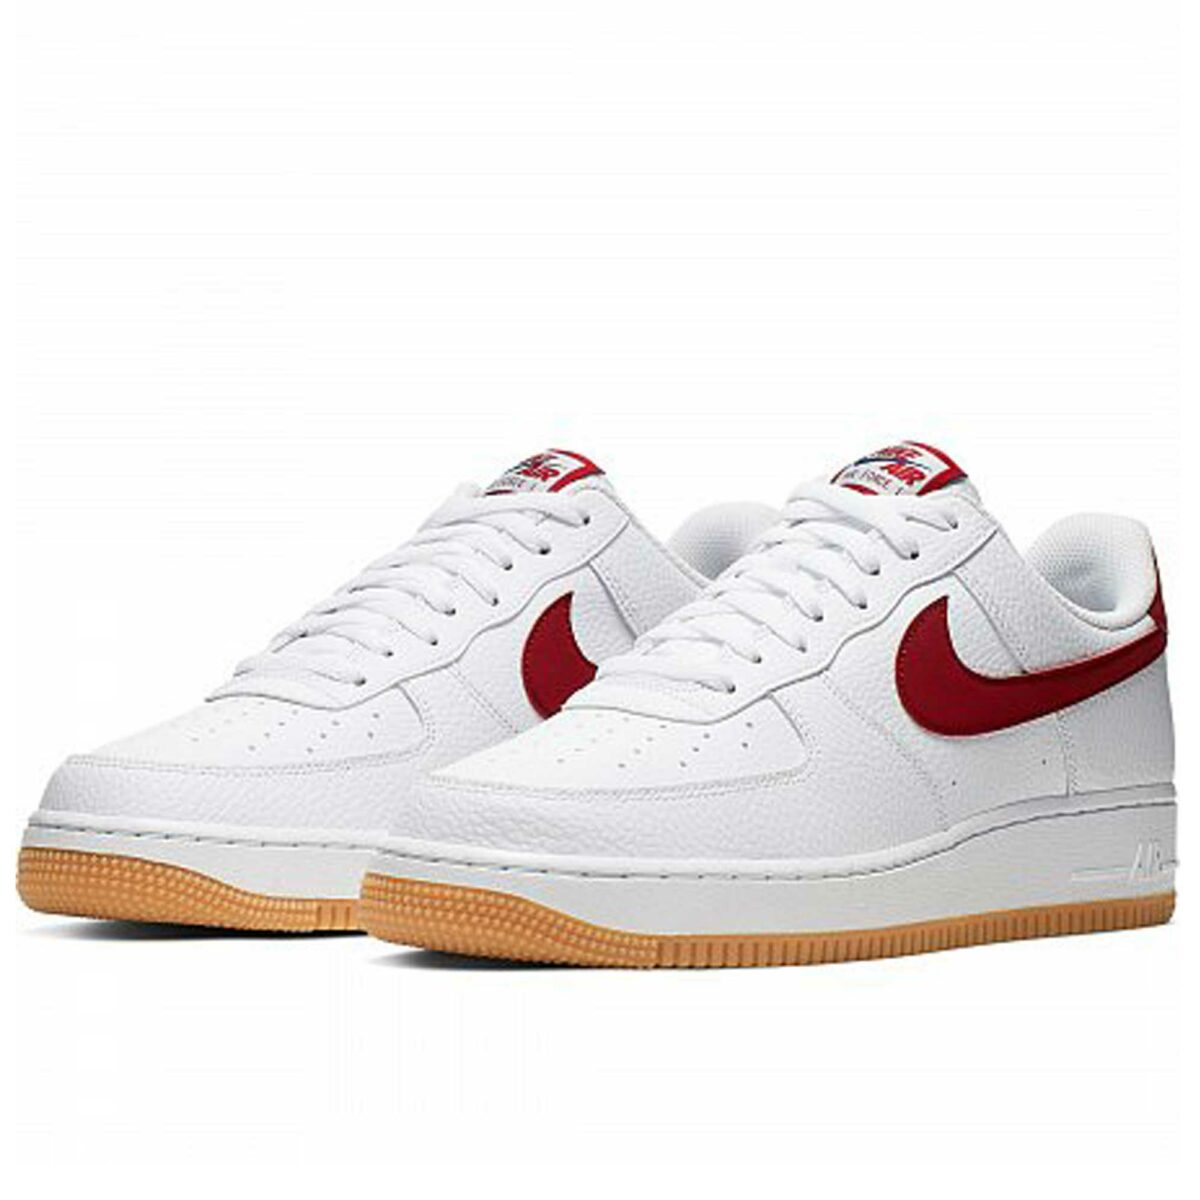 nike air force 1 low white red gum Cl0057_101 купить